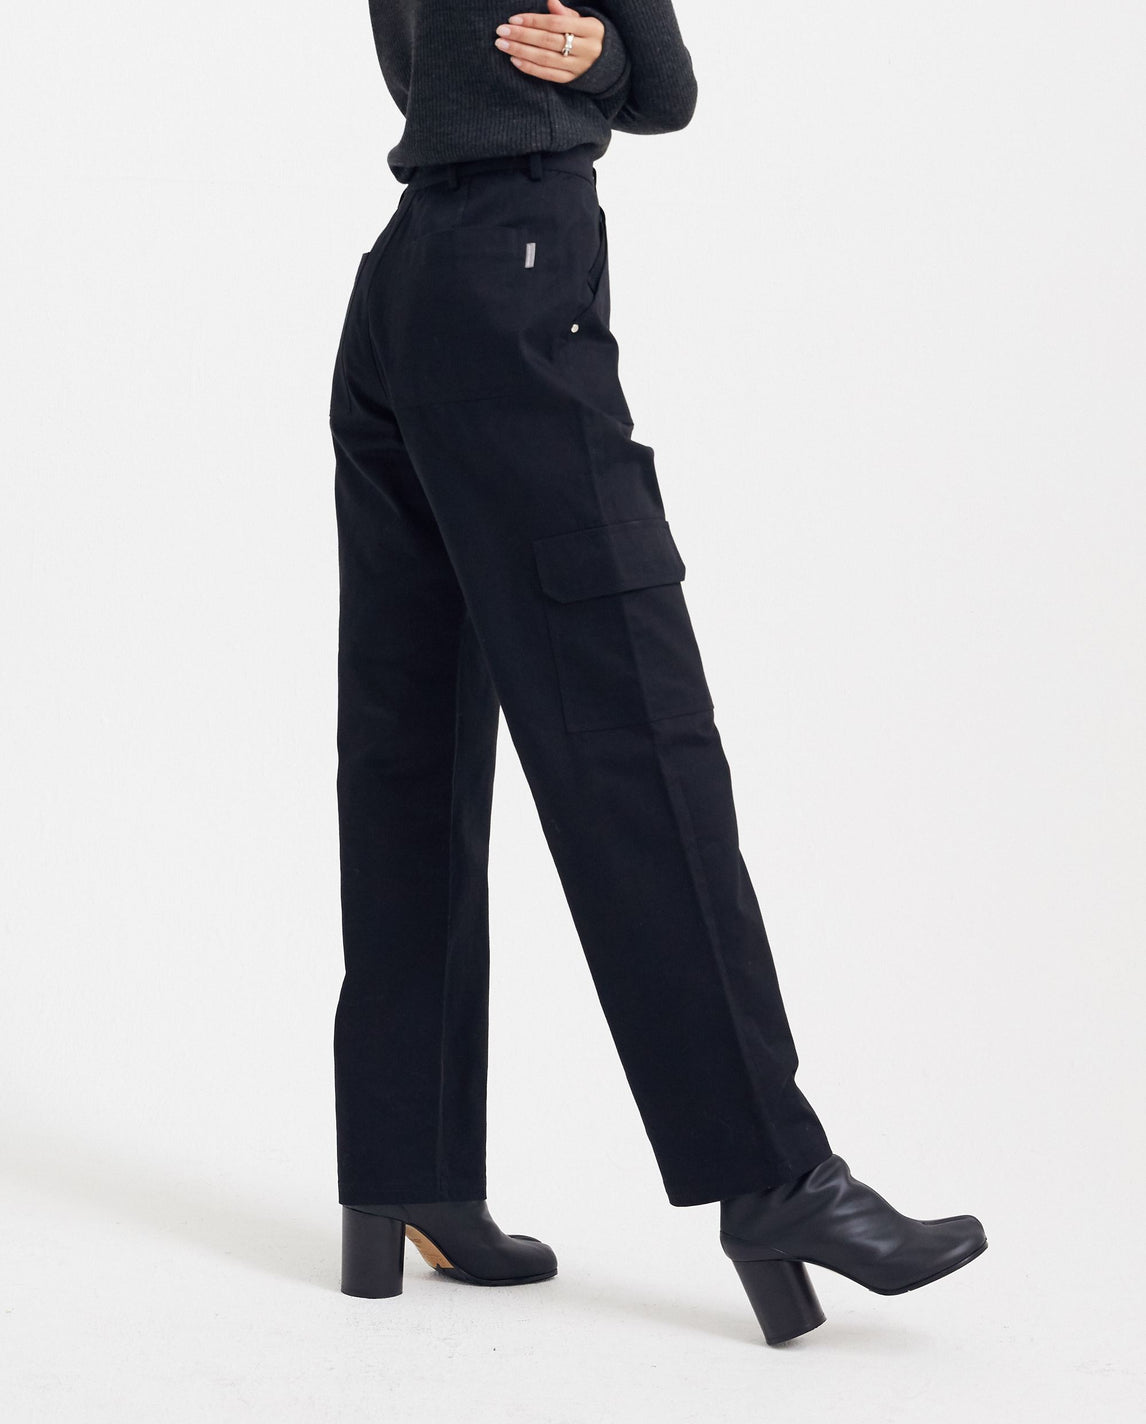 Clip-on Bag Pants - Black UNISEX PRIVATE POLICY